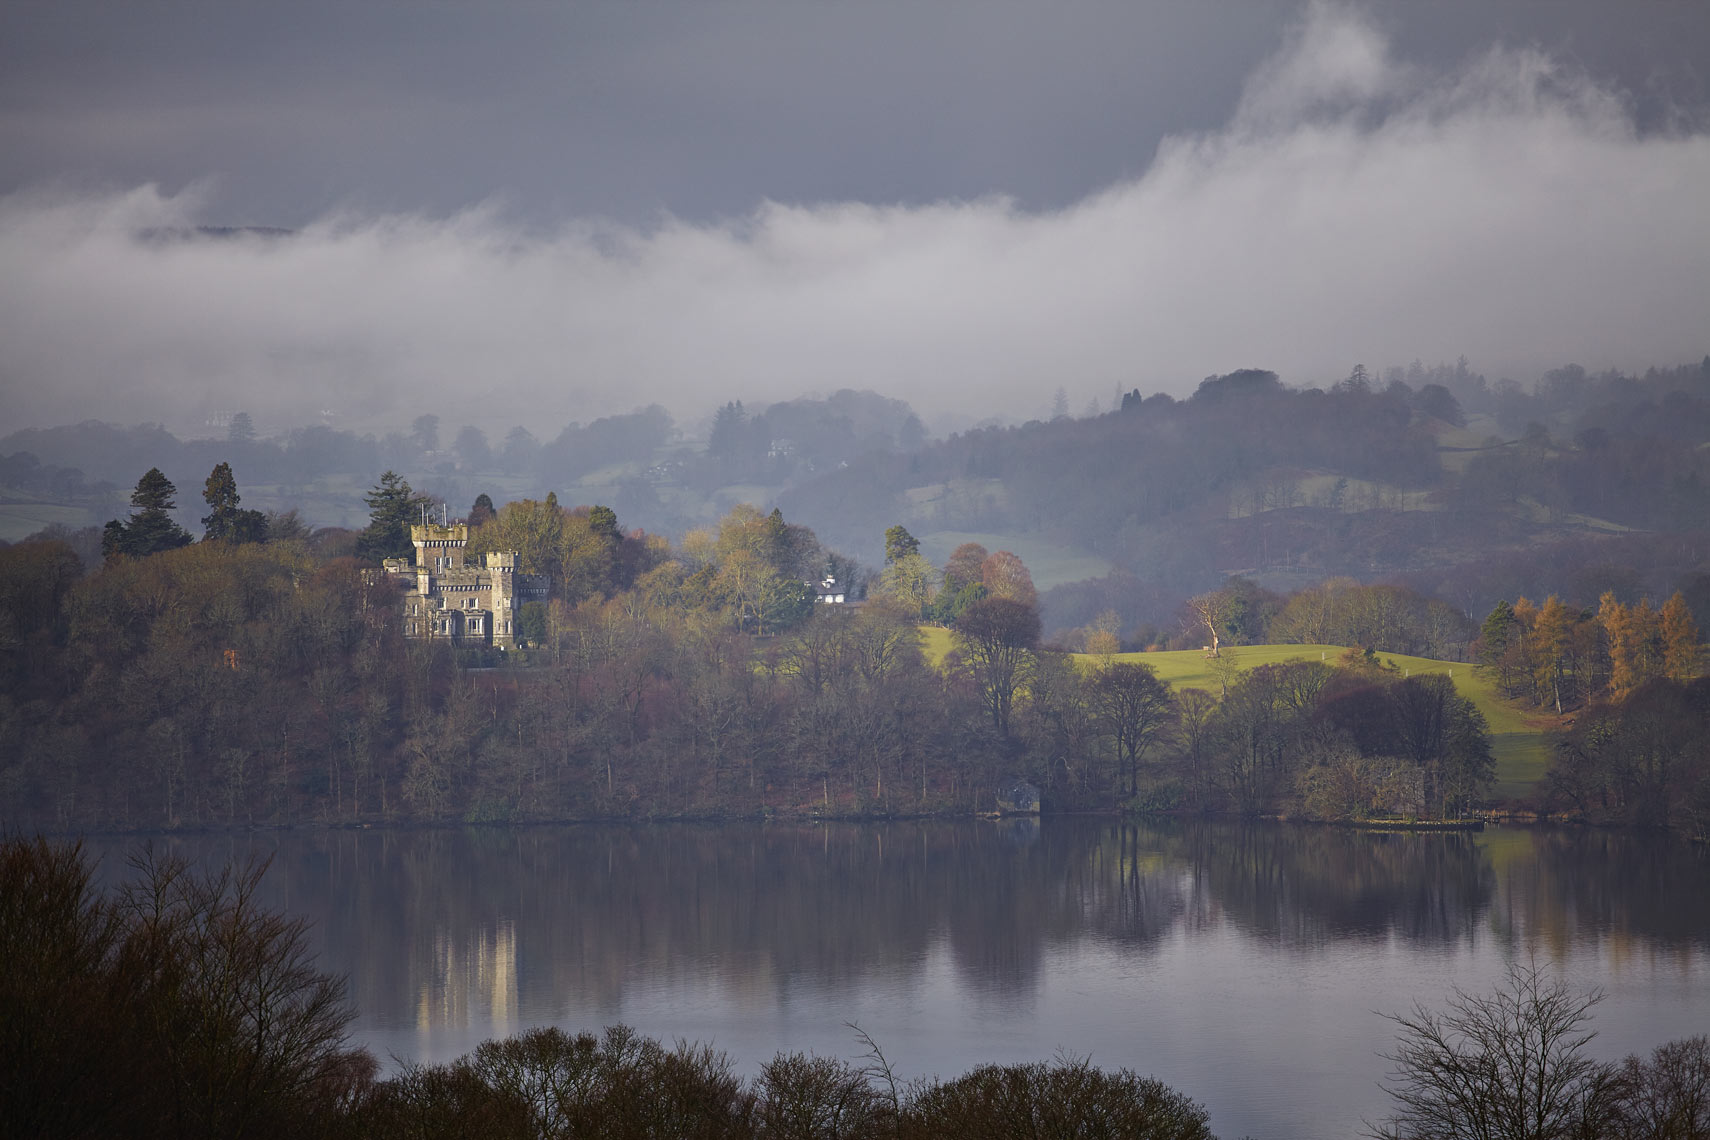 Wray Castle, Claife, Lake Windermere